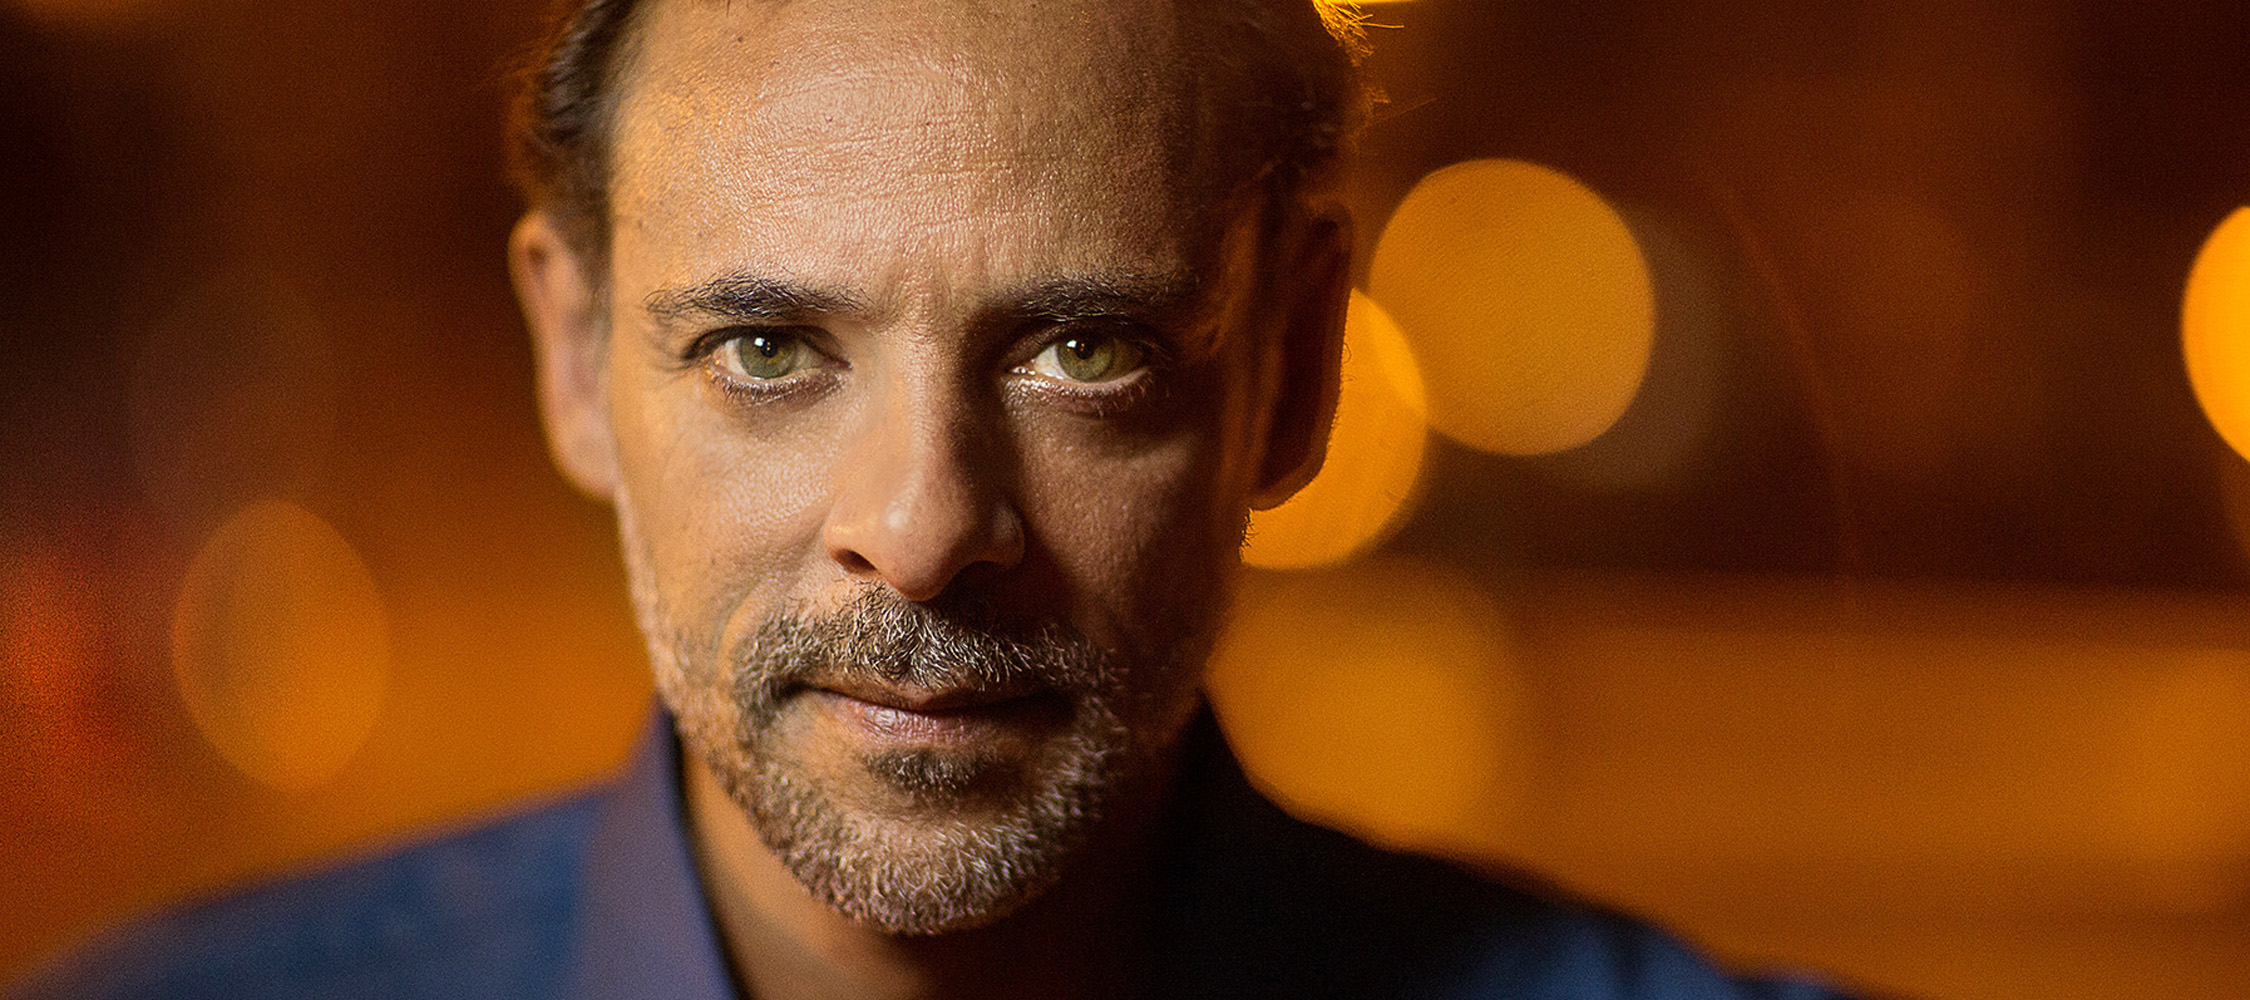 ALEXANDER SIDDIG TO STAR AS ARISTOTLE ONASSIS 'THE KENNEDYS-AFTER CAMELOT'